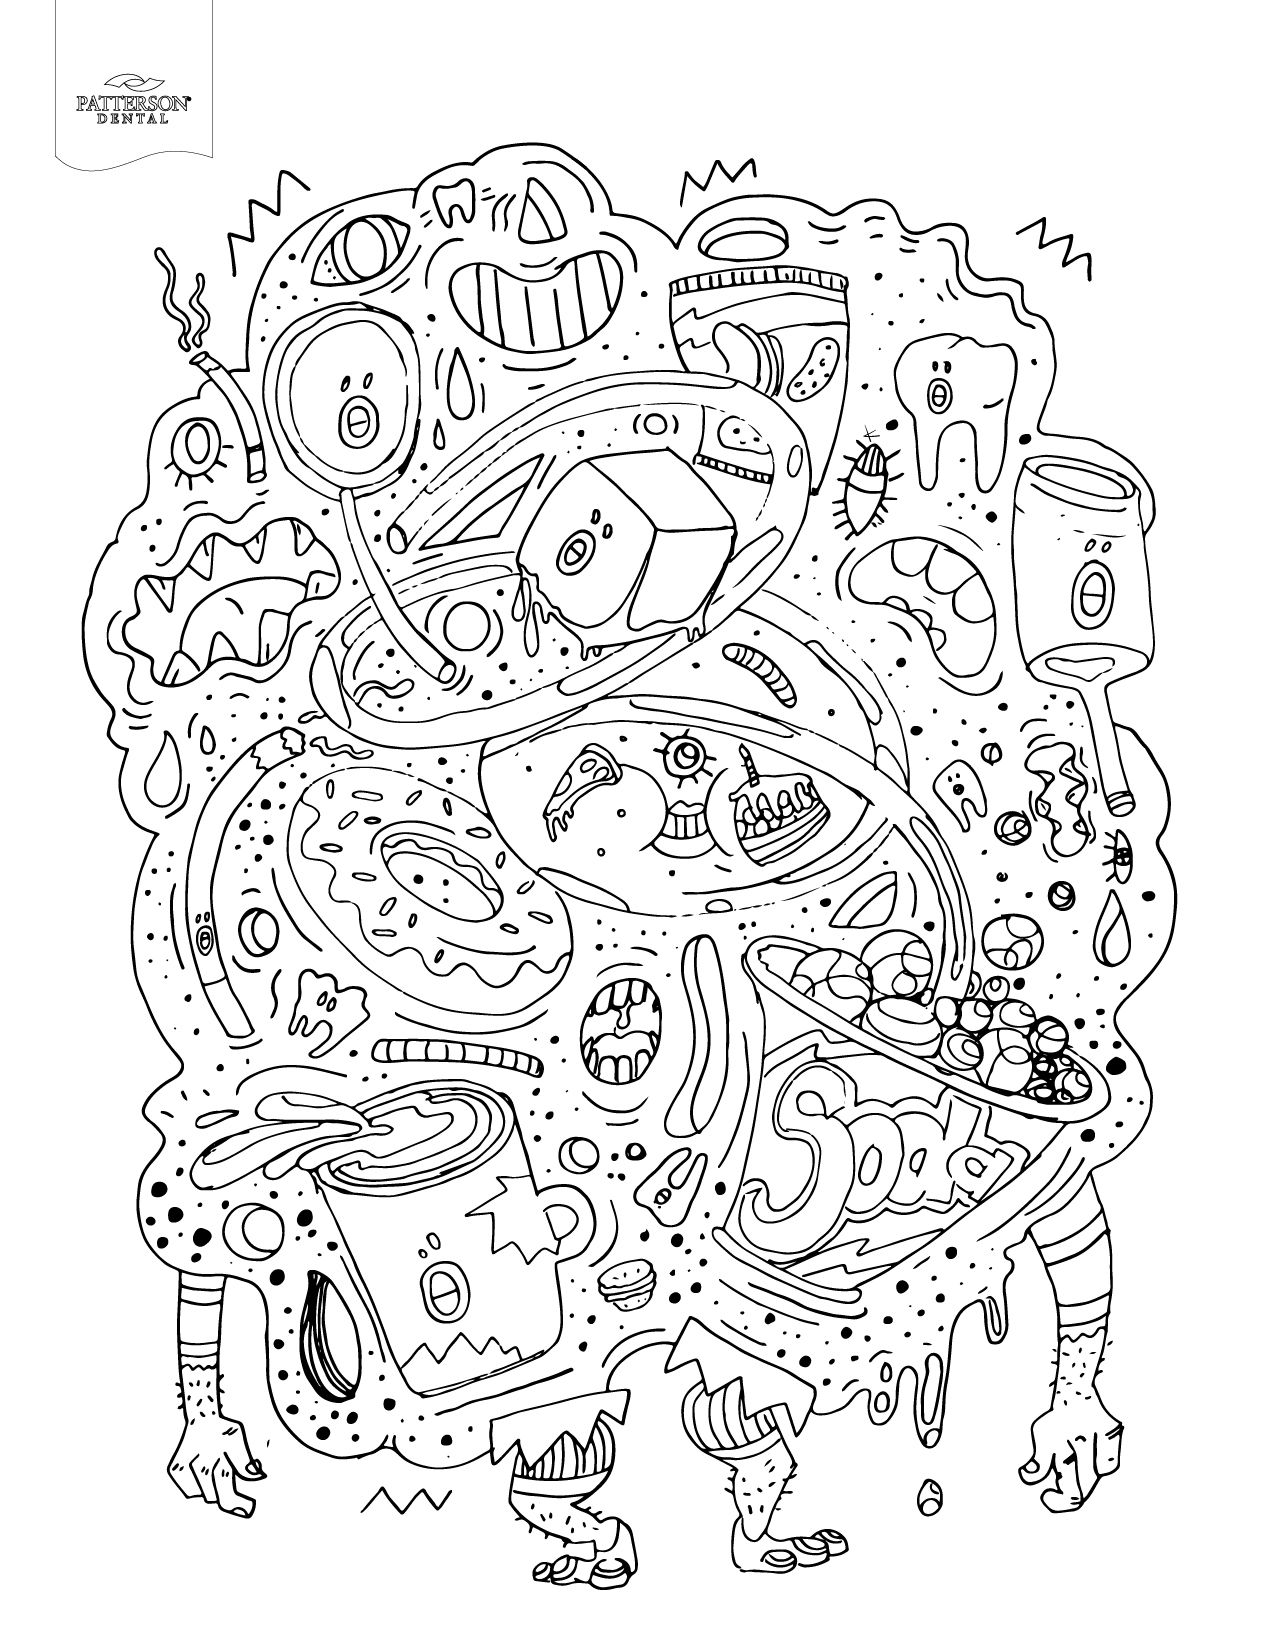 Colouring in pages dental - 10 Toothy Adult Coloring Pages Printable Off The Cusp